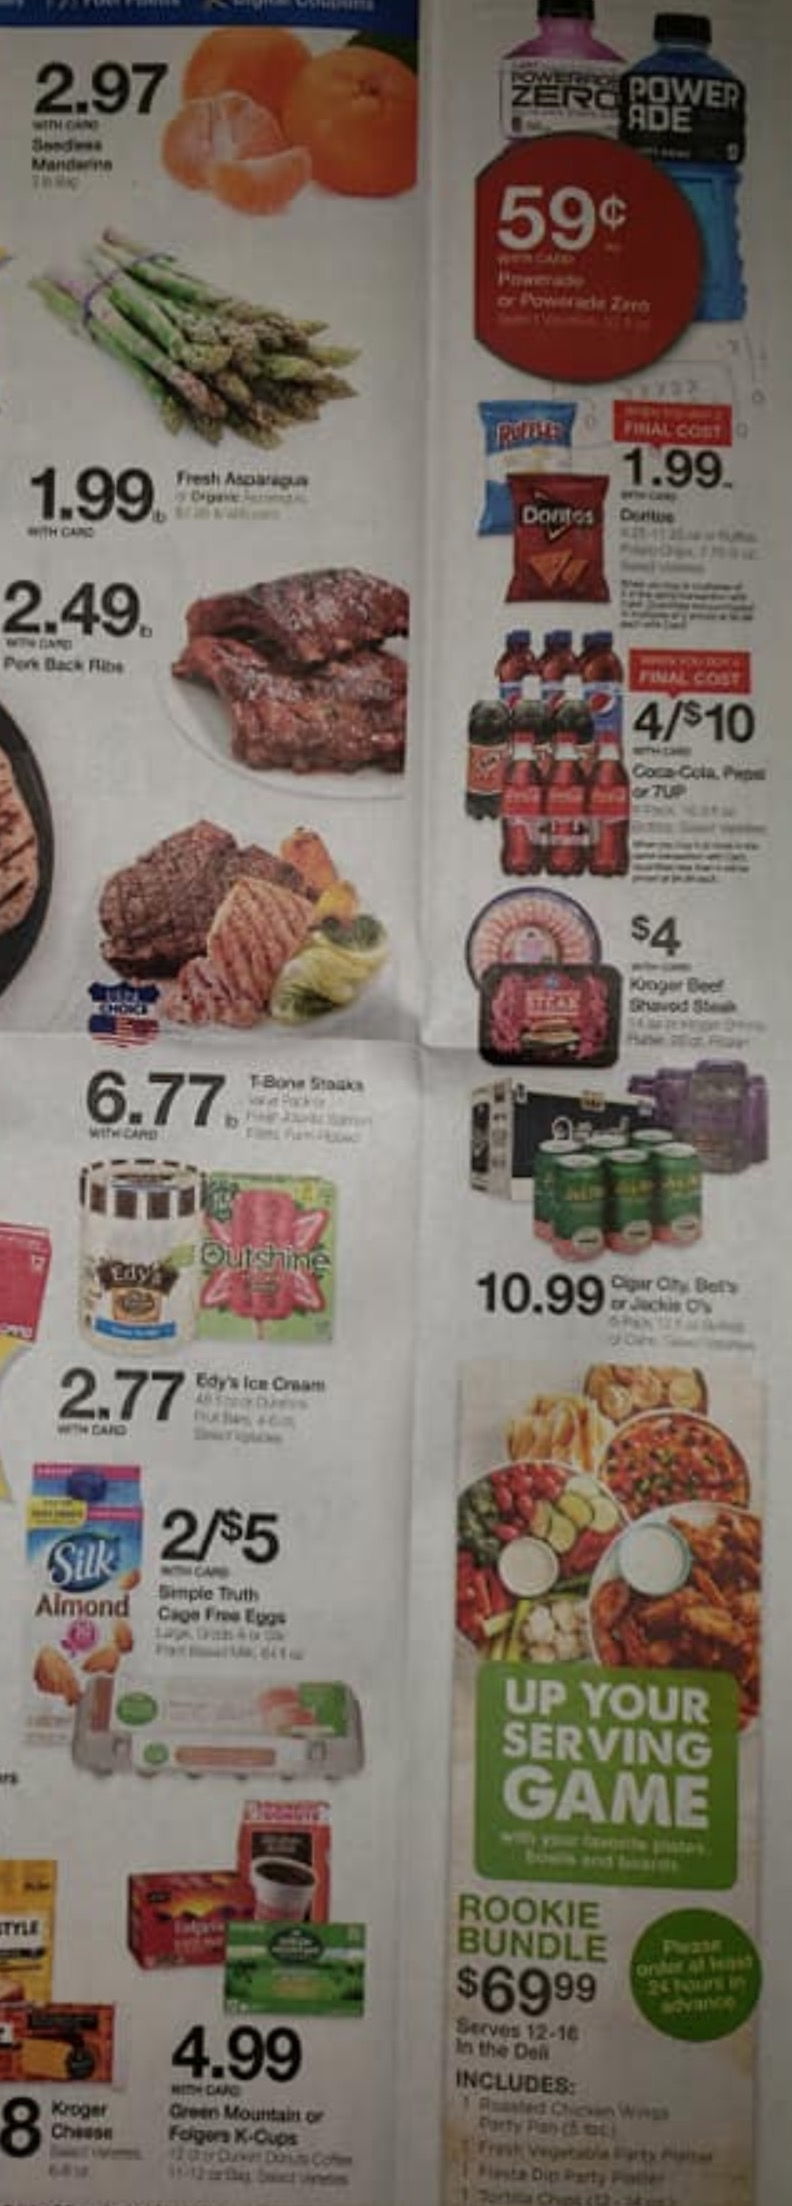 Kroger Weekly Ad (10/2/19 - 10/8/19) Early Preview